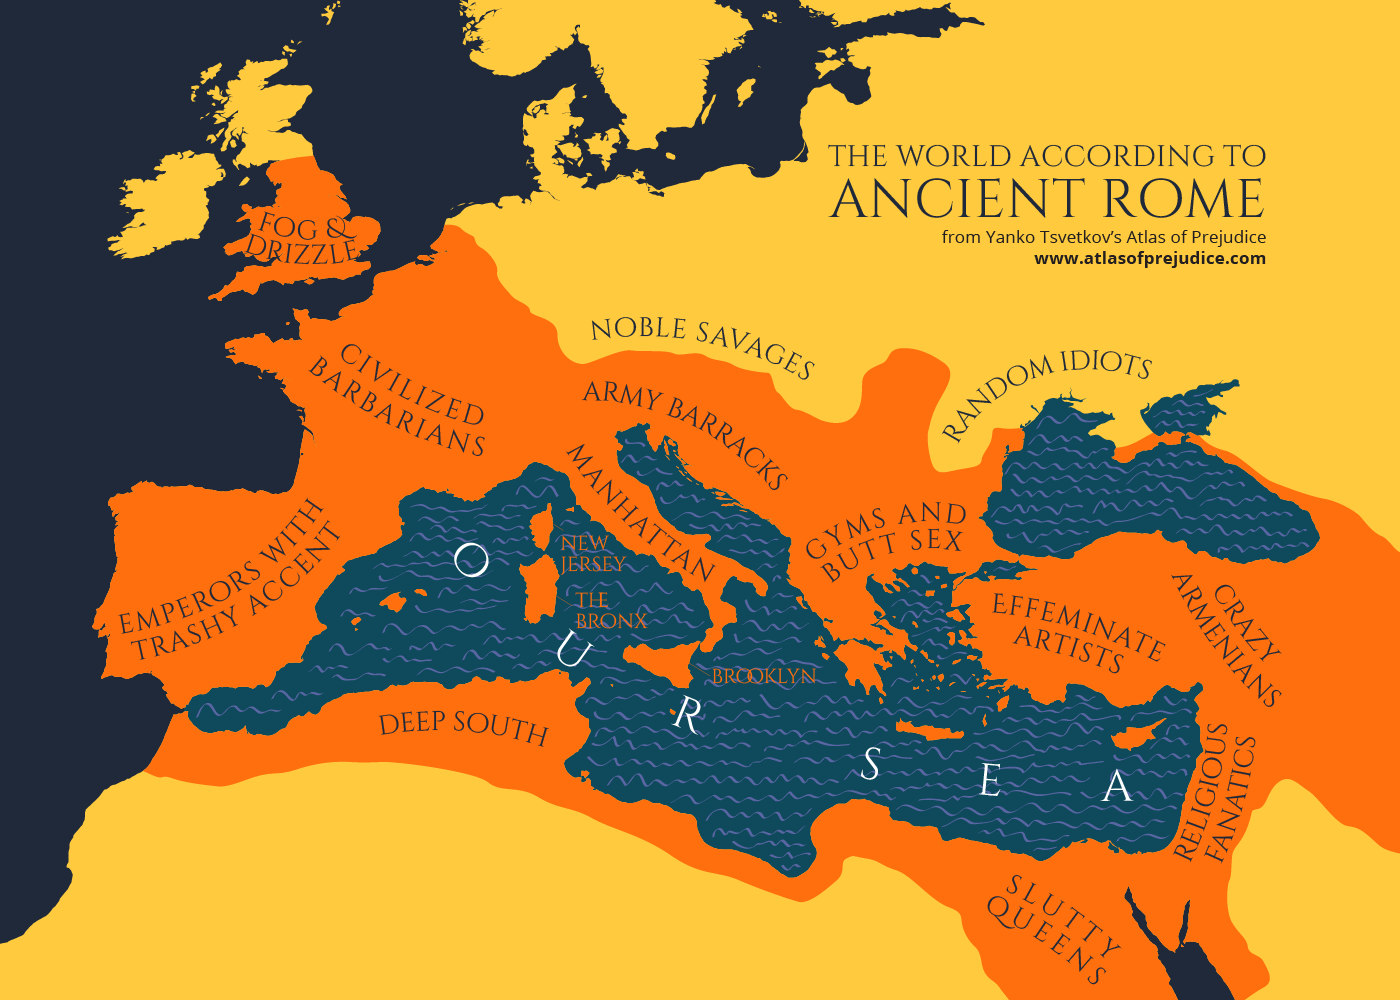 The World According to Ancient Rome